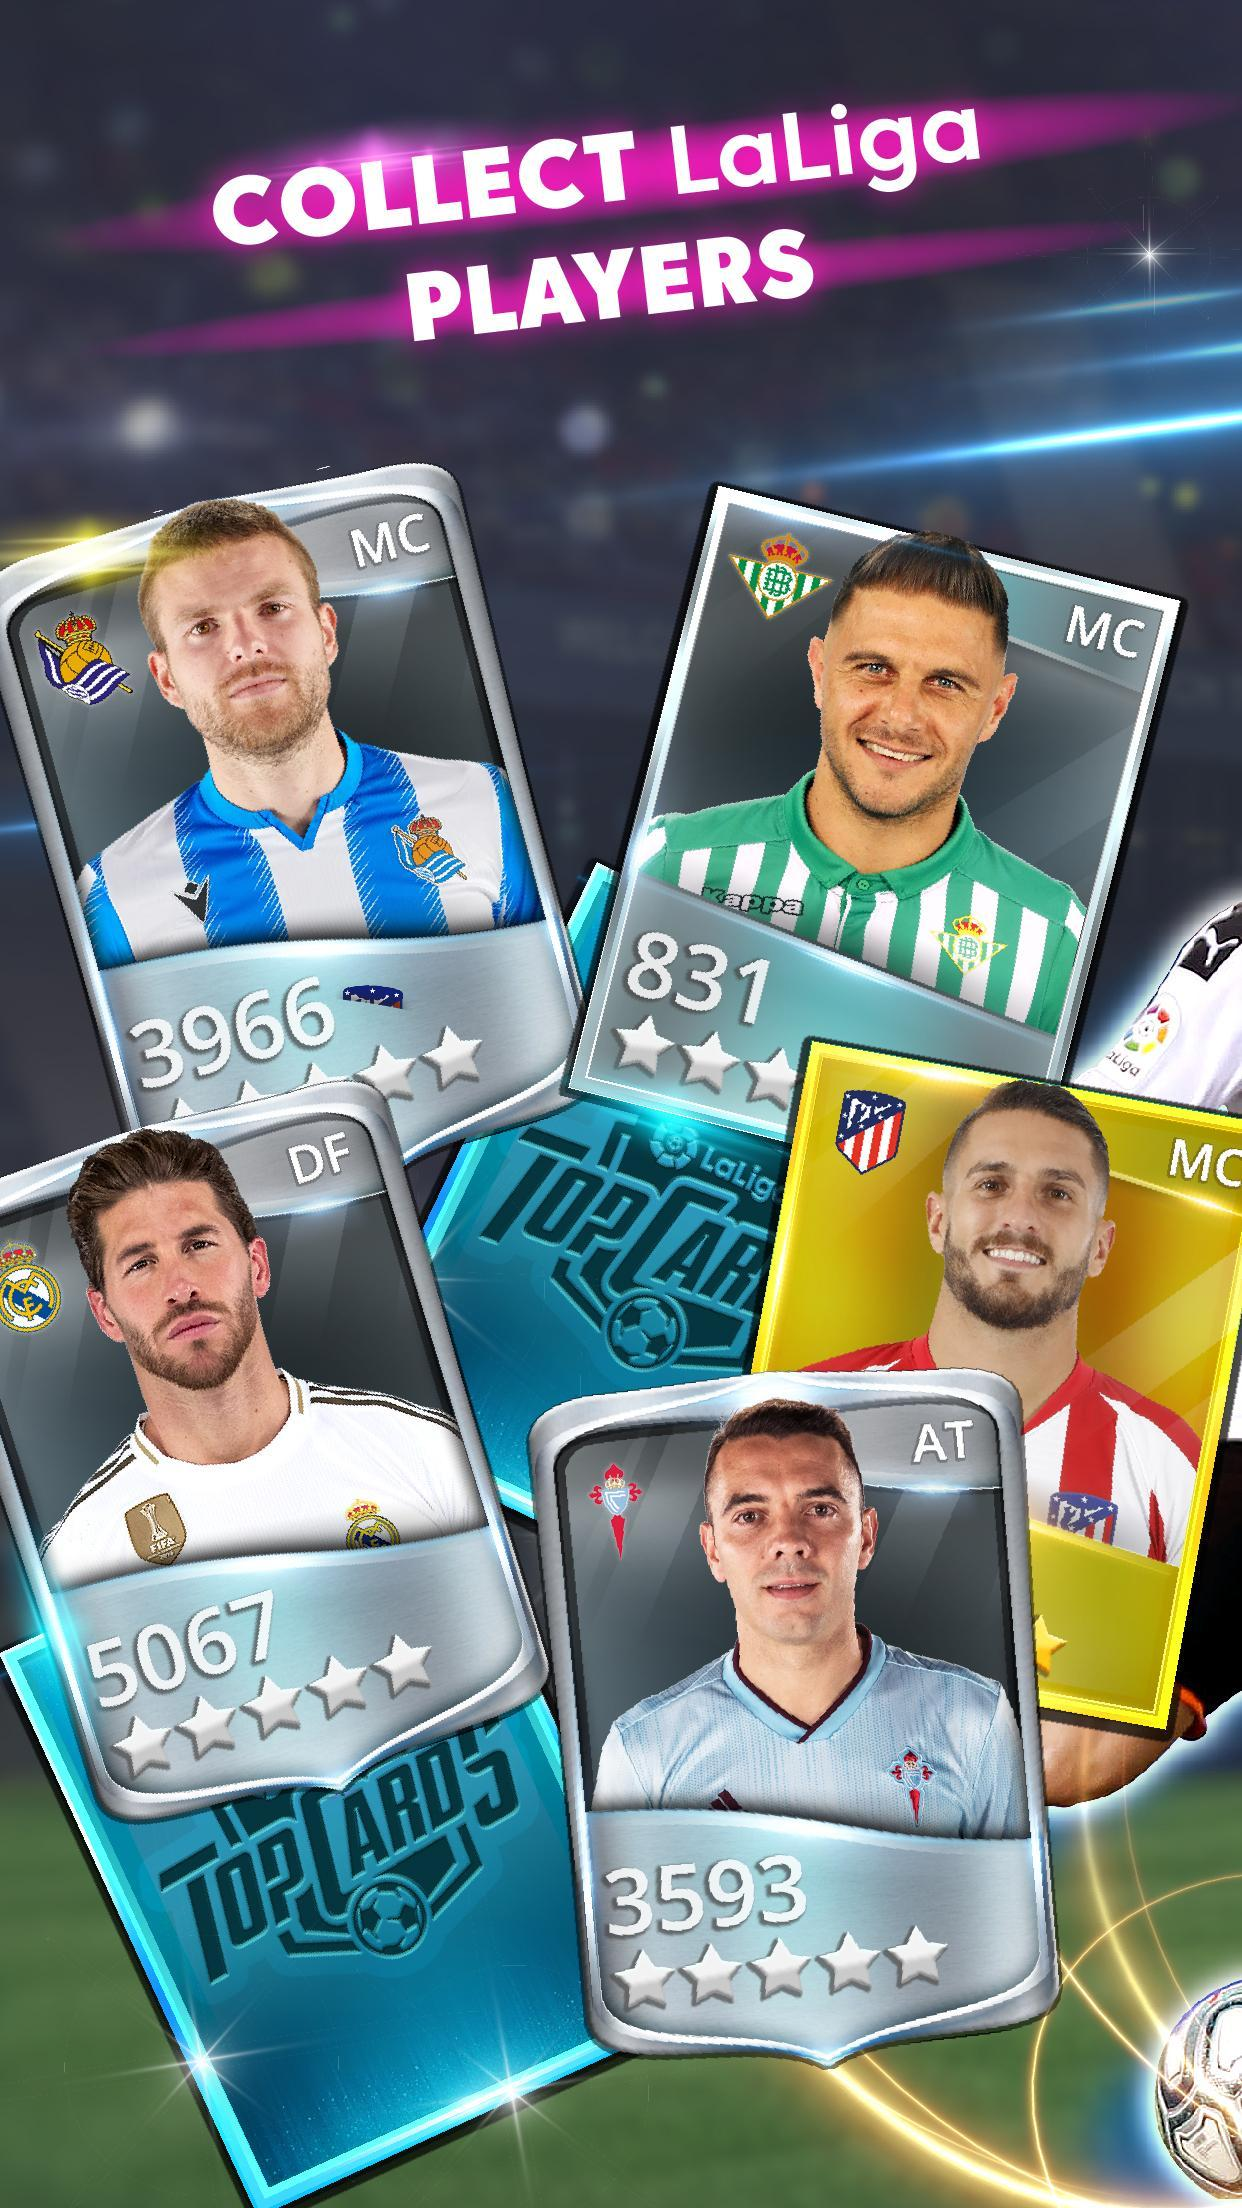 LaLiga Top Cards 2020 - Soccer Card Battle Game 4.1.4 Screenshot 2